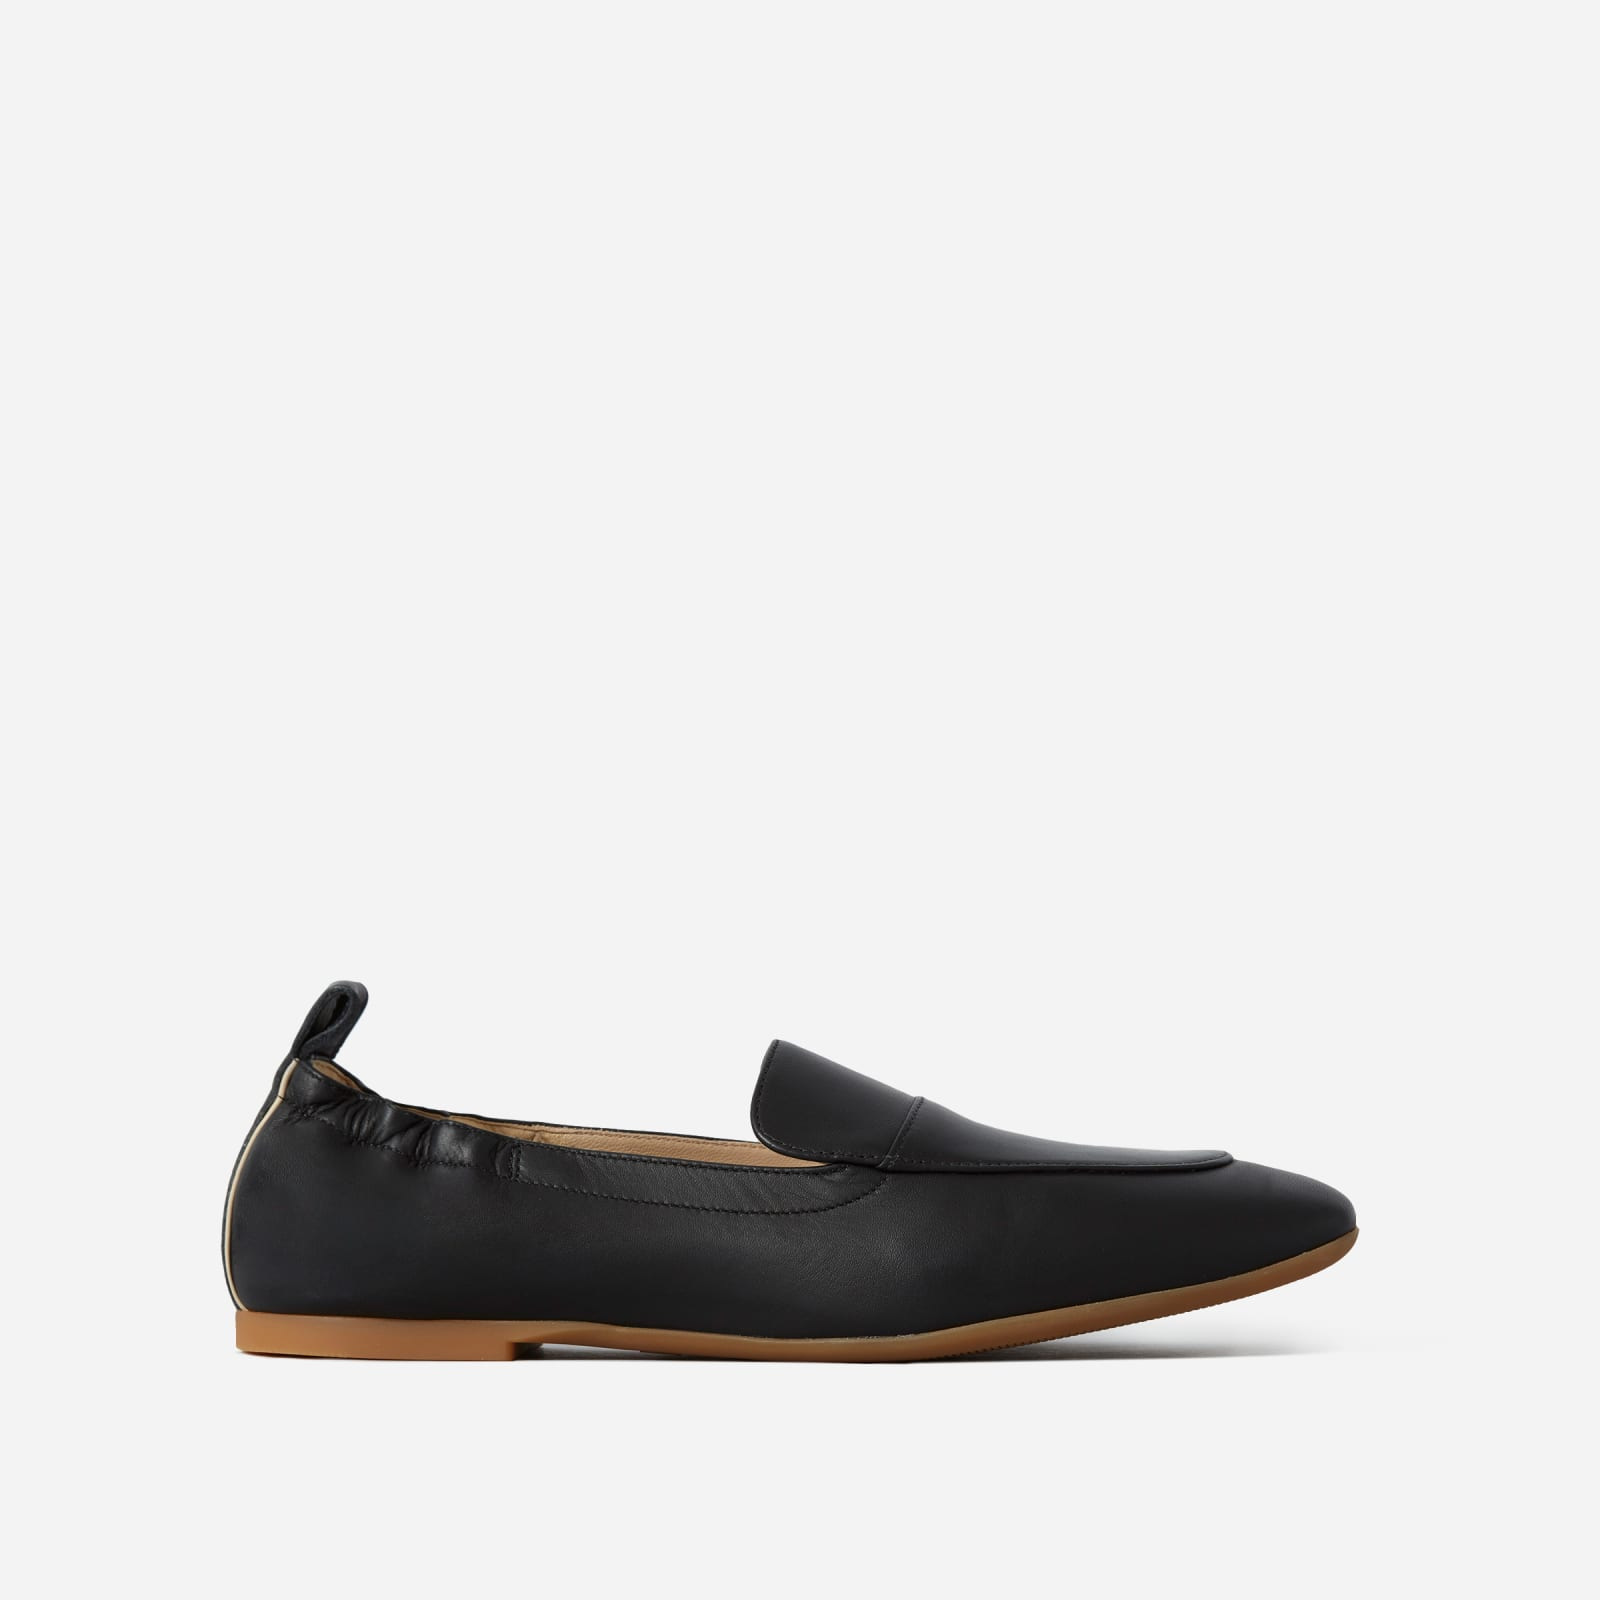 leather driving loafers by everlane in black, size 5